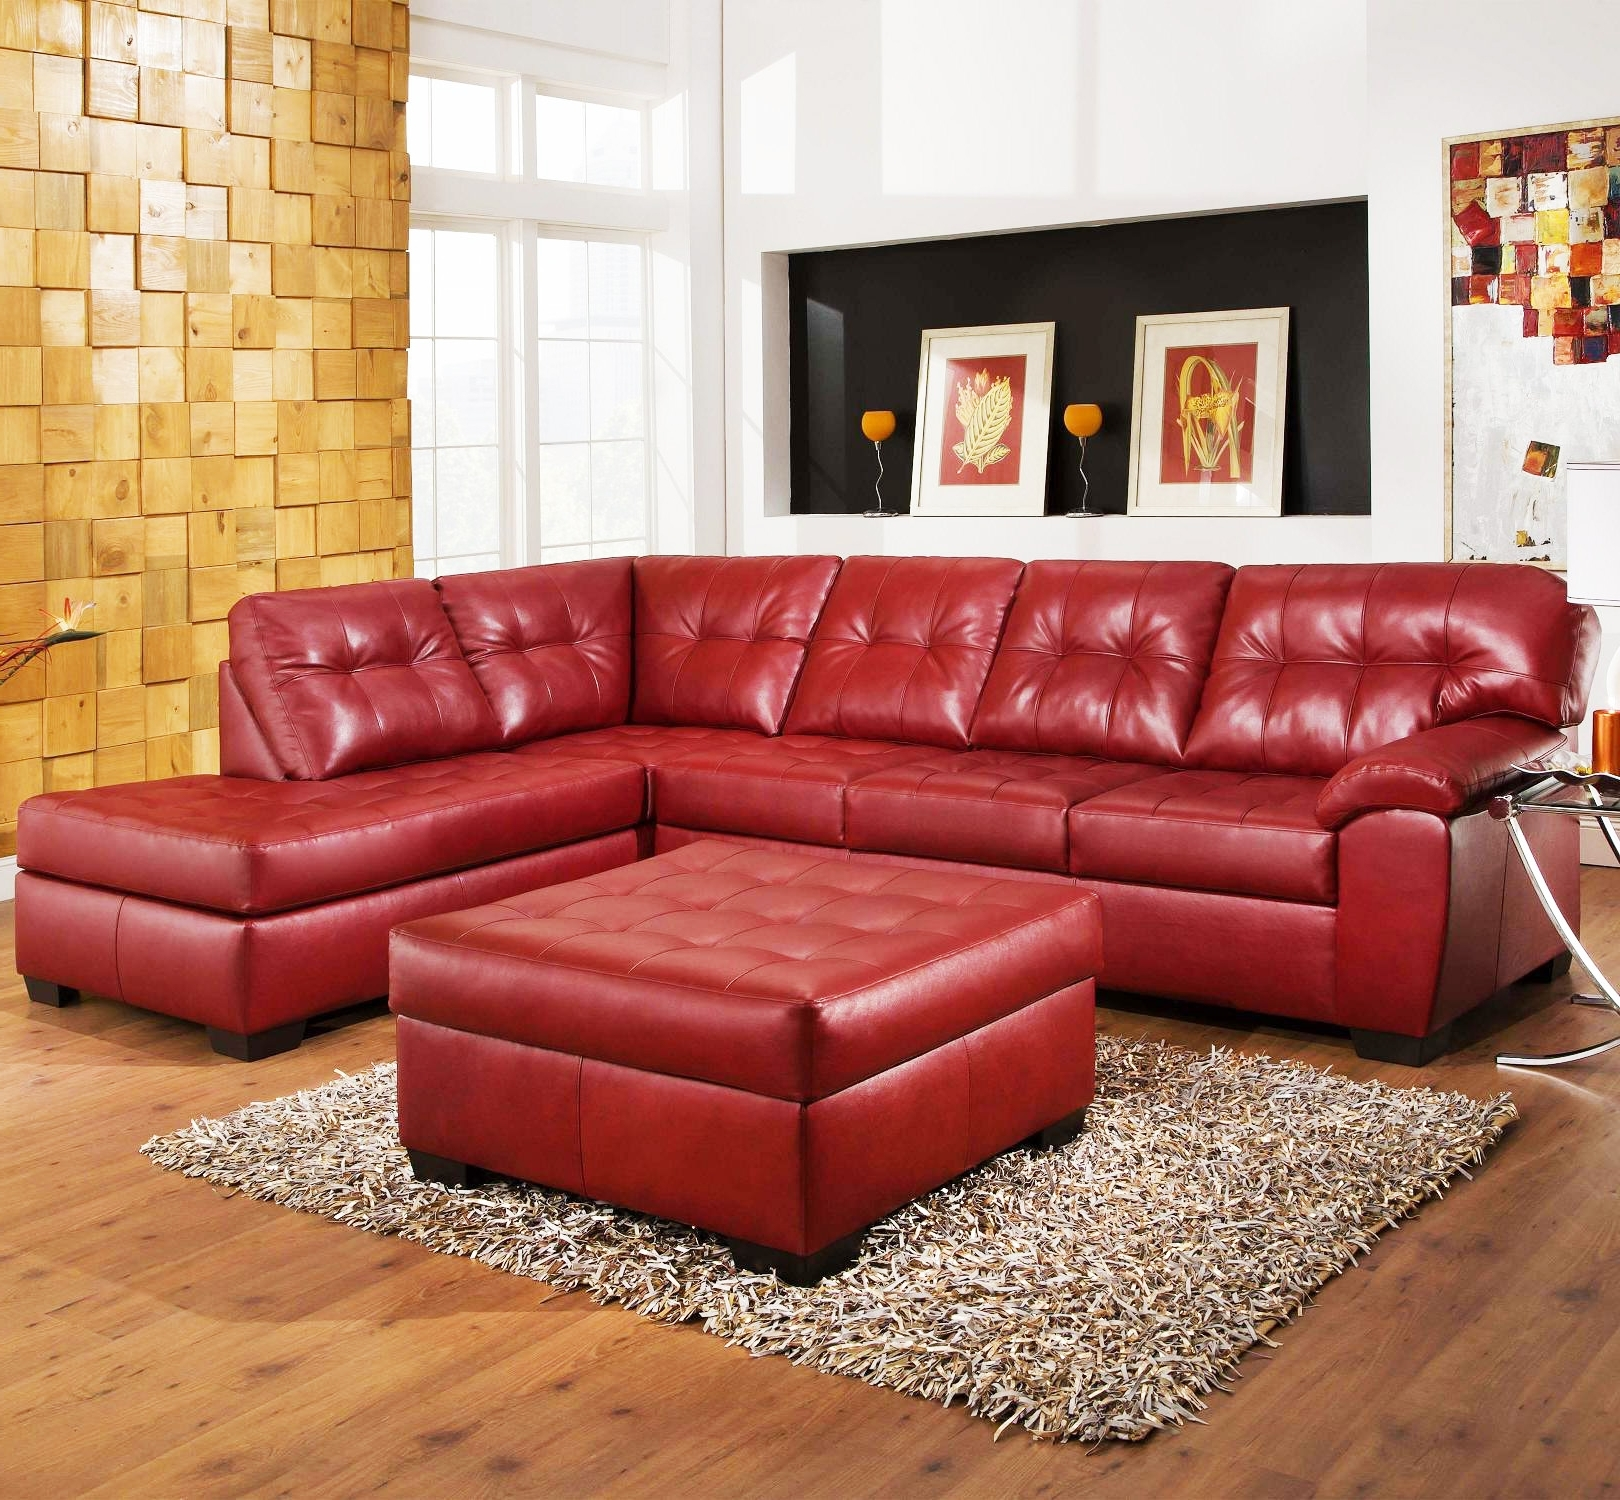 Sofas : Sectional Couch Small Sectional Couch Red Sectional Couch Intended For Preferred Red Leather Couches (View 16 of 20)